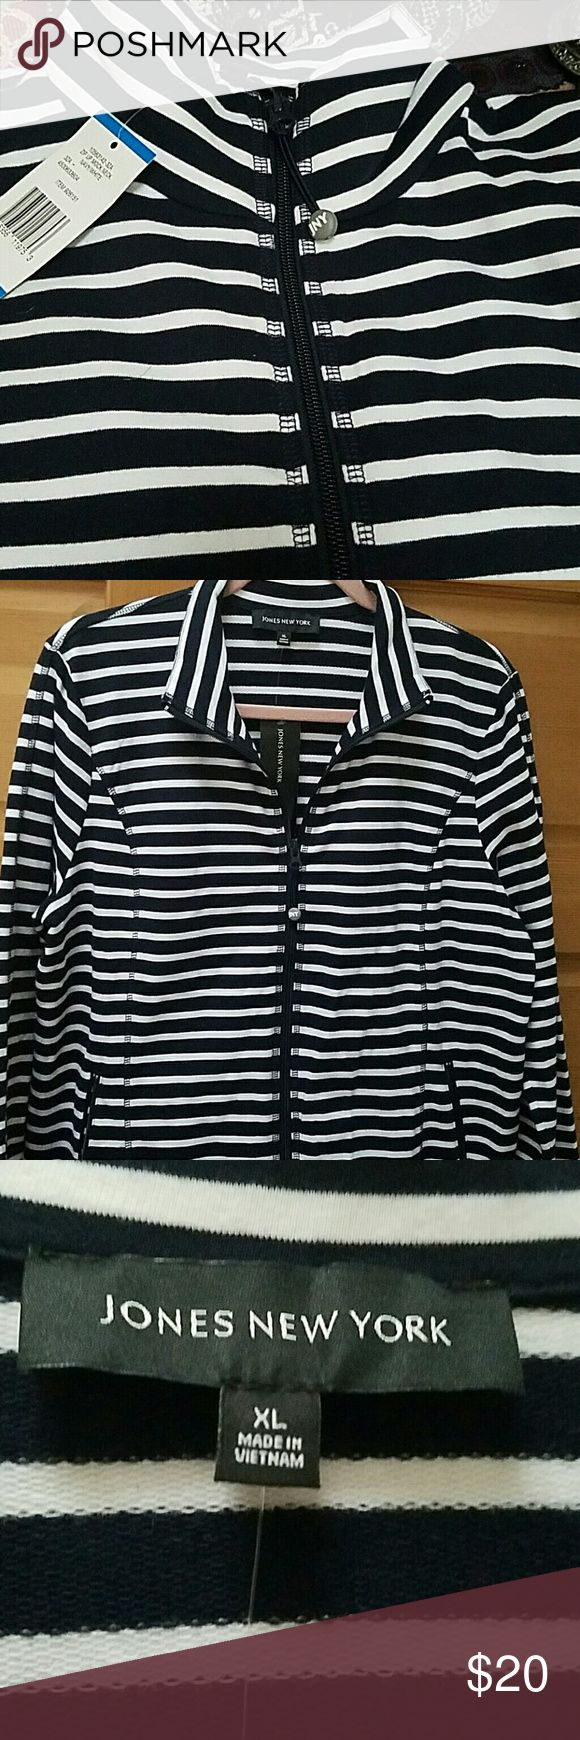 Ahoy Matey!  Super soft nautical zip up from JNY Navy blue and white stripes scream summer by the water!  This super soft cotton full zip jacket features zip pockets on both sides.  Brand new with tags. Jones New York Tops Sweatshirts & Hoodies